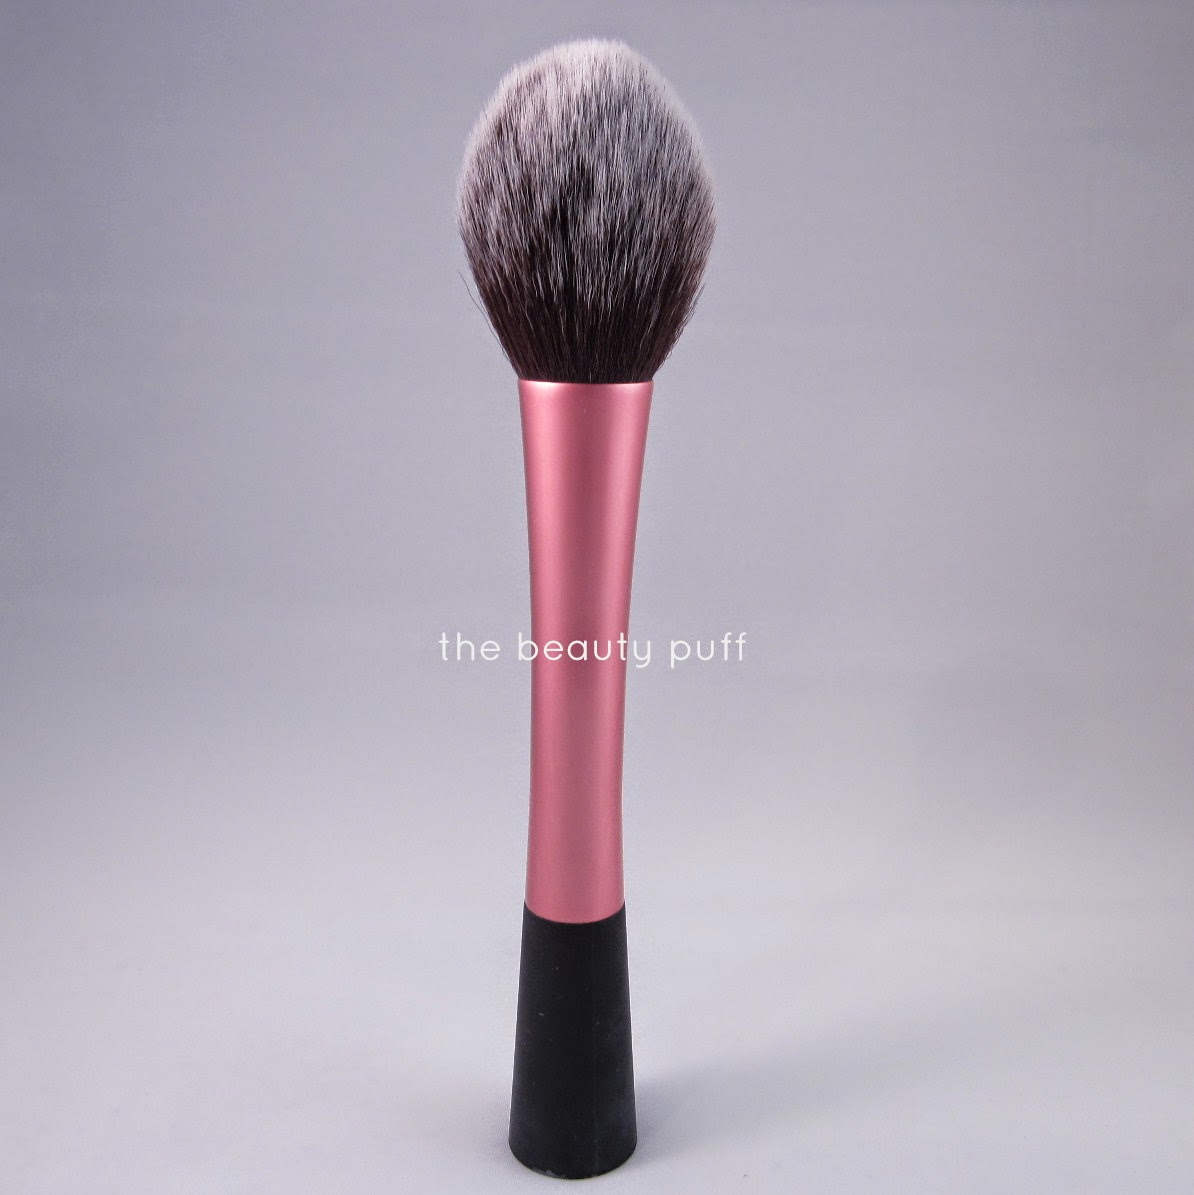 real techniques blush brush - the beauty puff